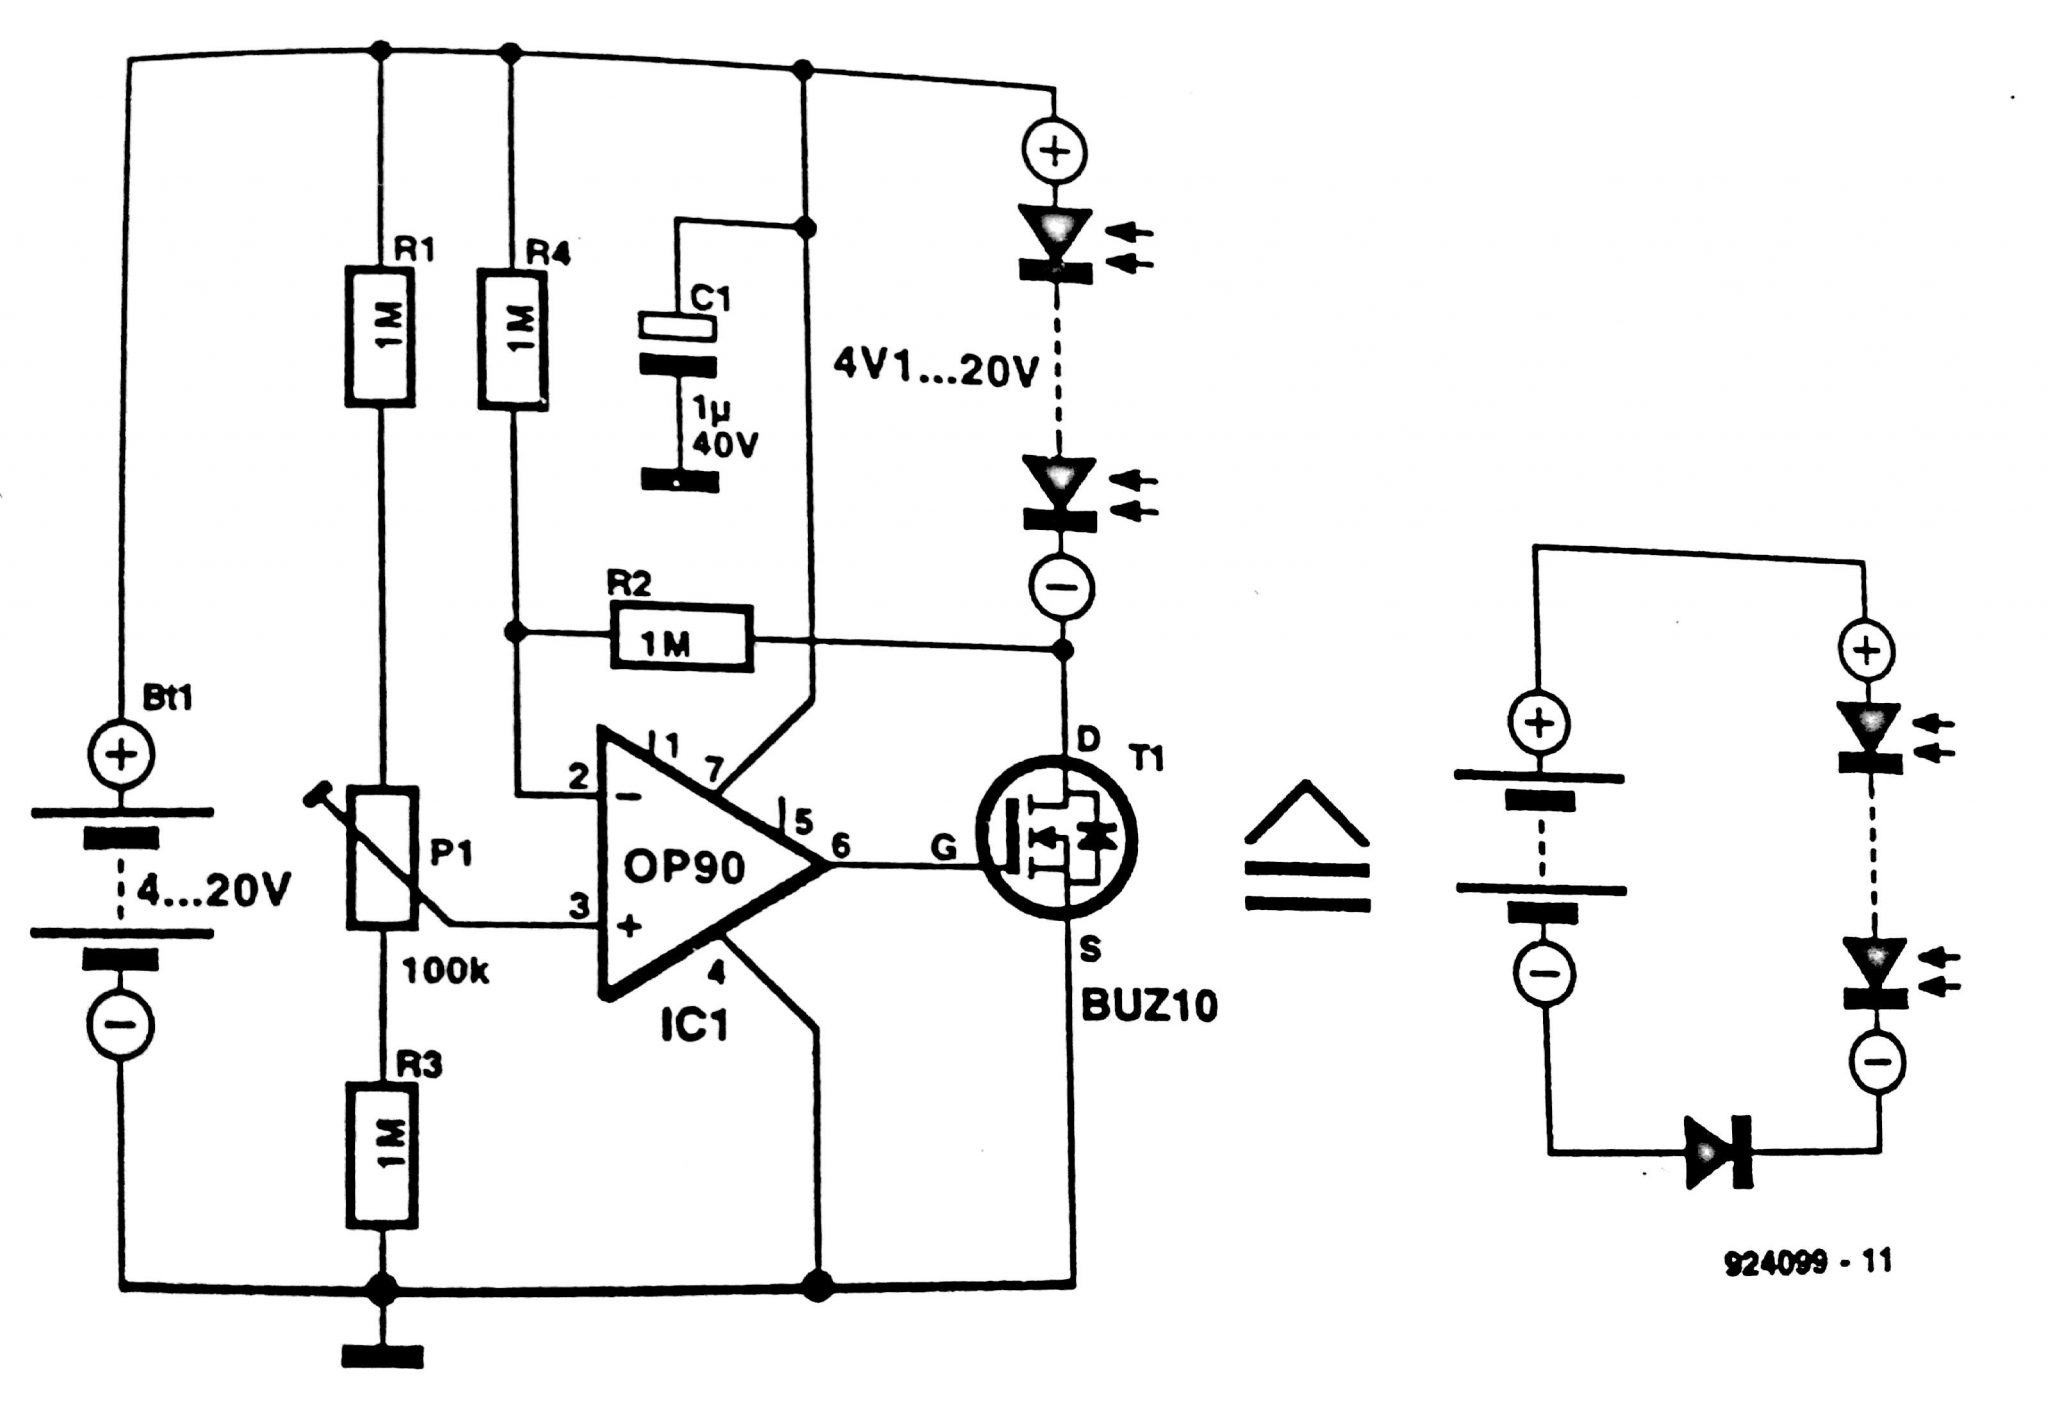 dayton unit heater wiring diagram  diagrams  wiring